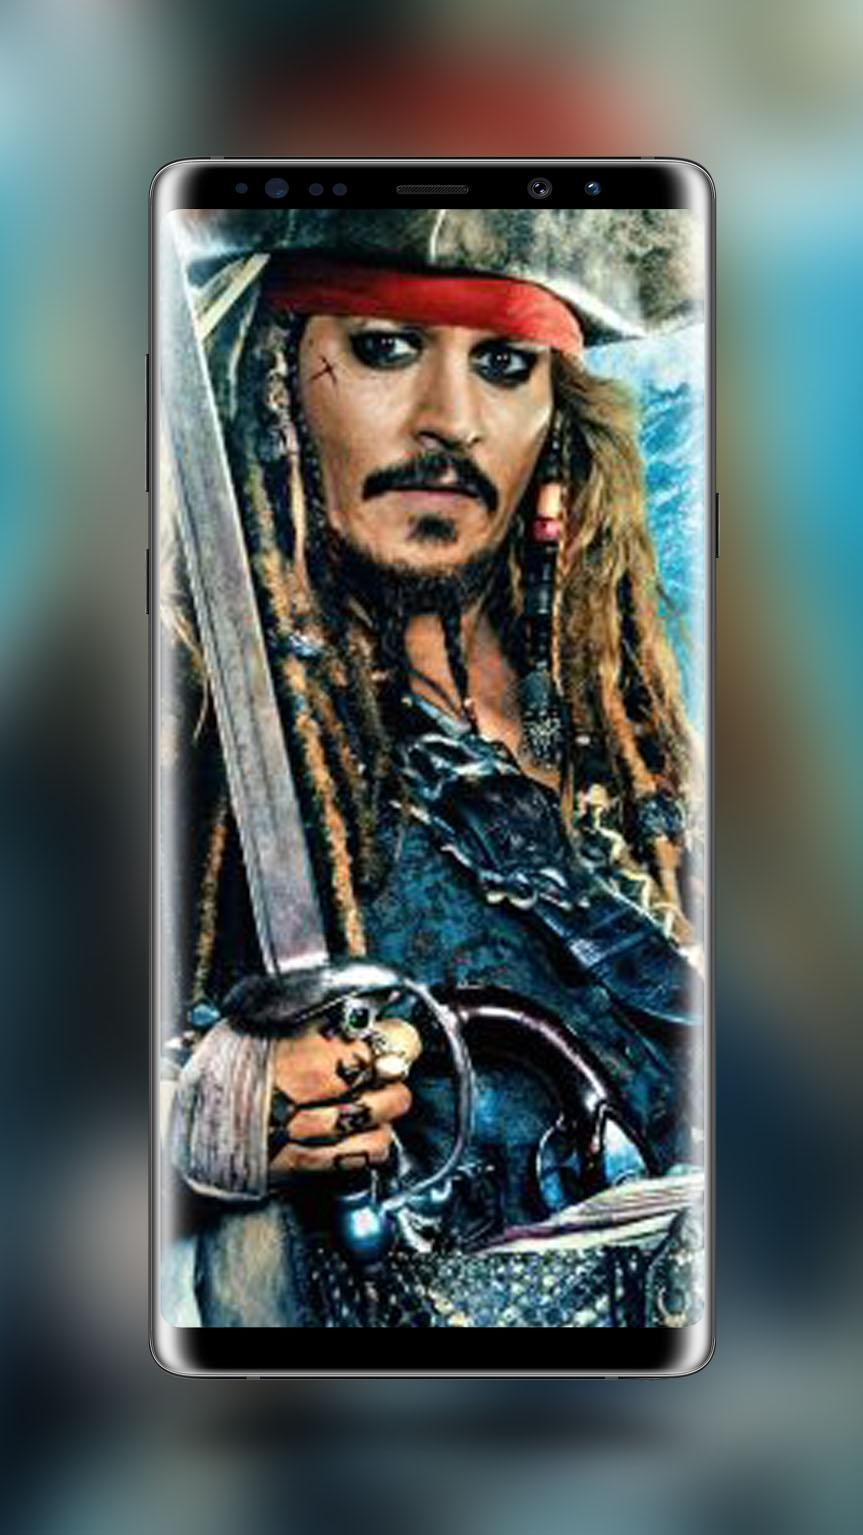 Jack Sparrow Wallpapers Hd For Android Apk Download